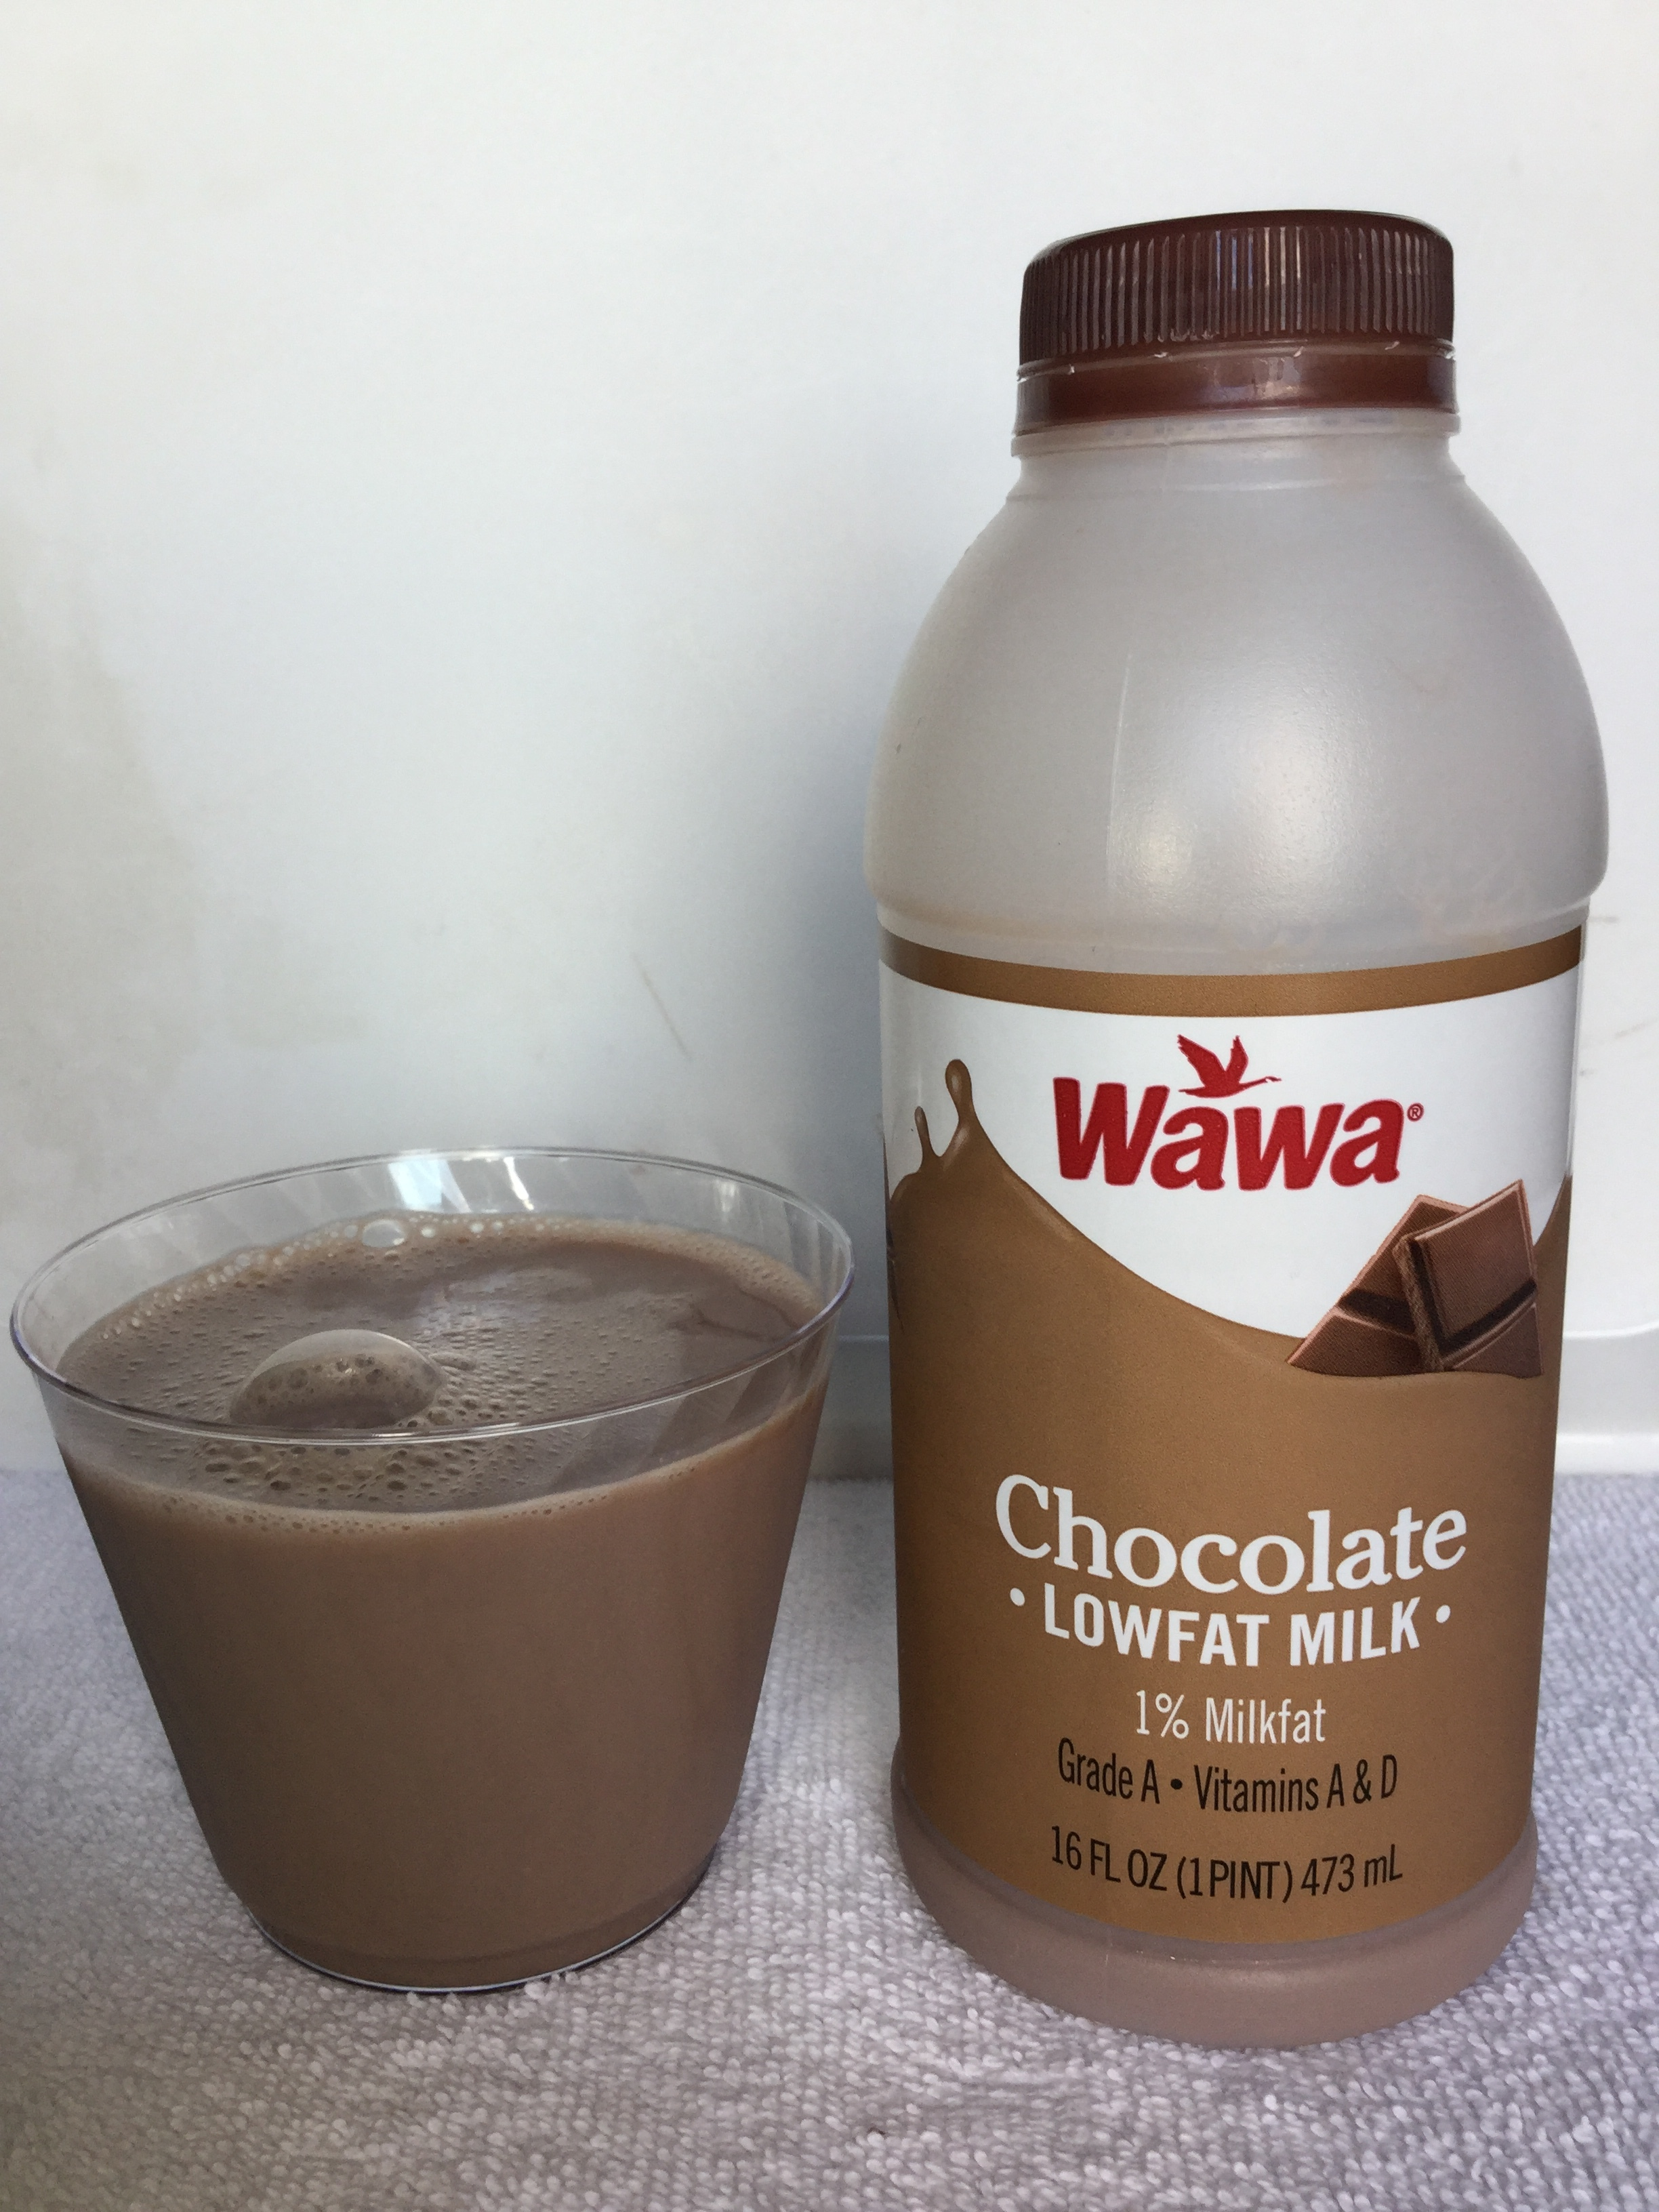 Wawa Lowfat Chocolate Milk Cup